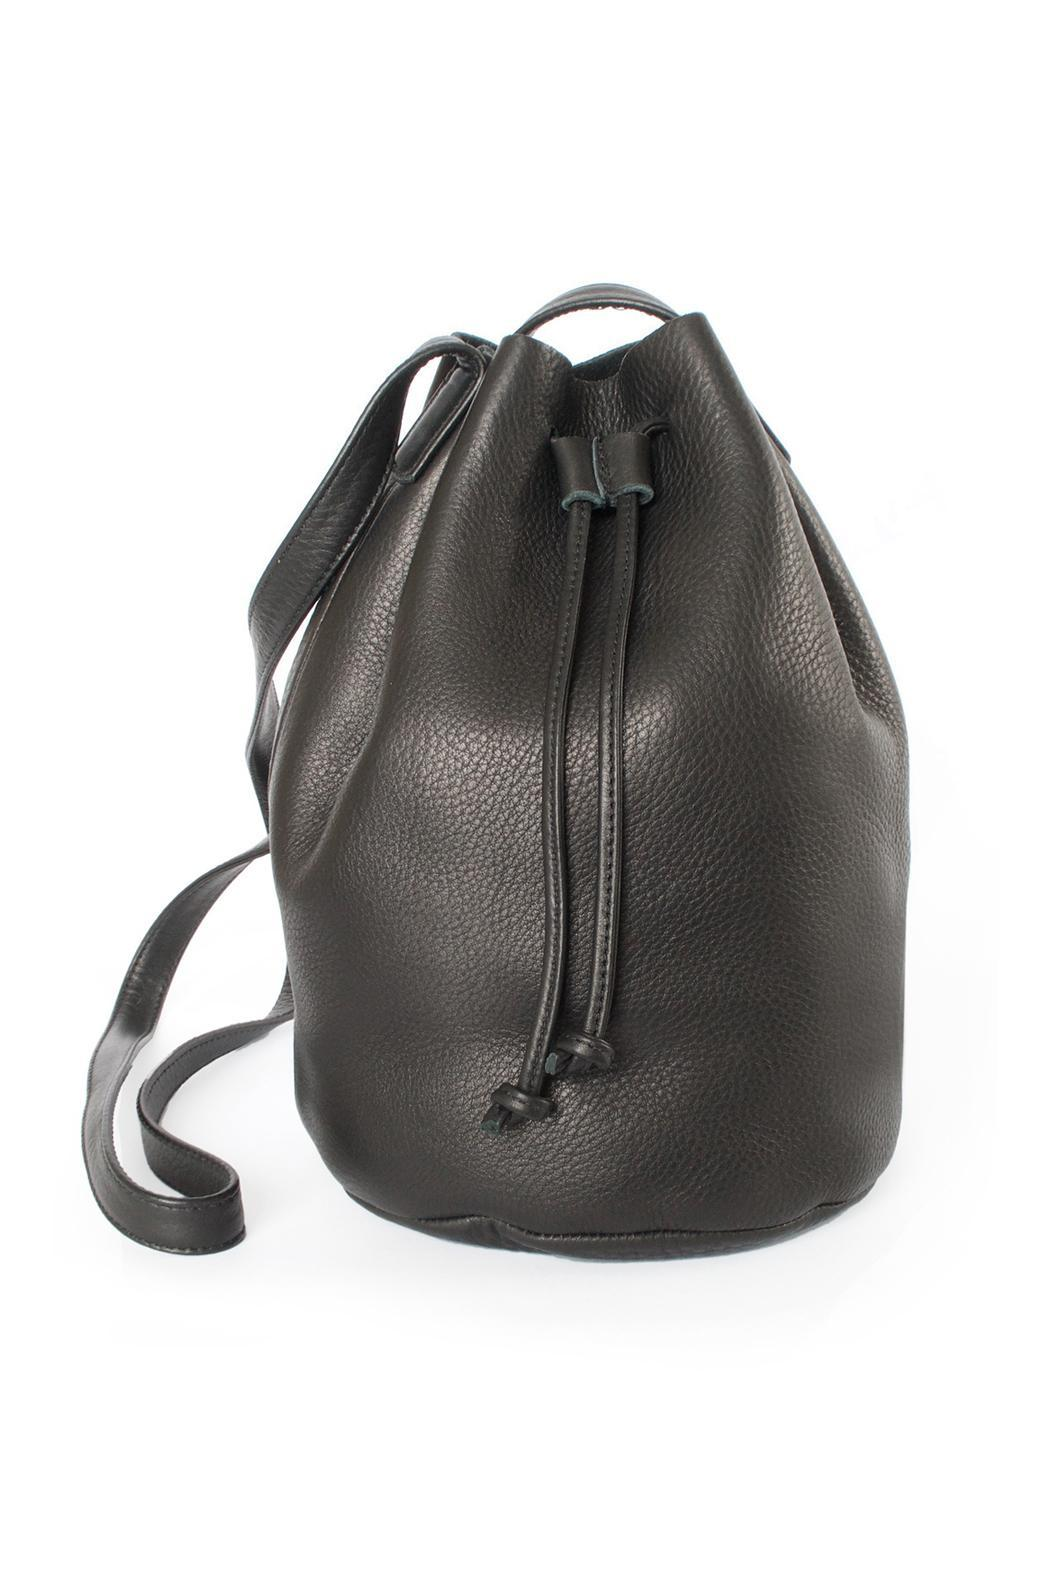 Baggu Leather Bucket Bag From Portland By Vintalier